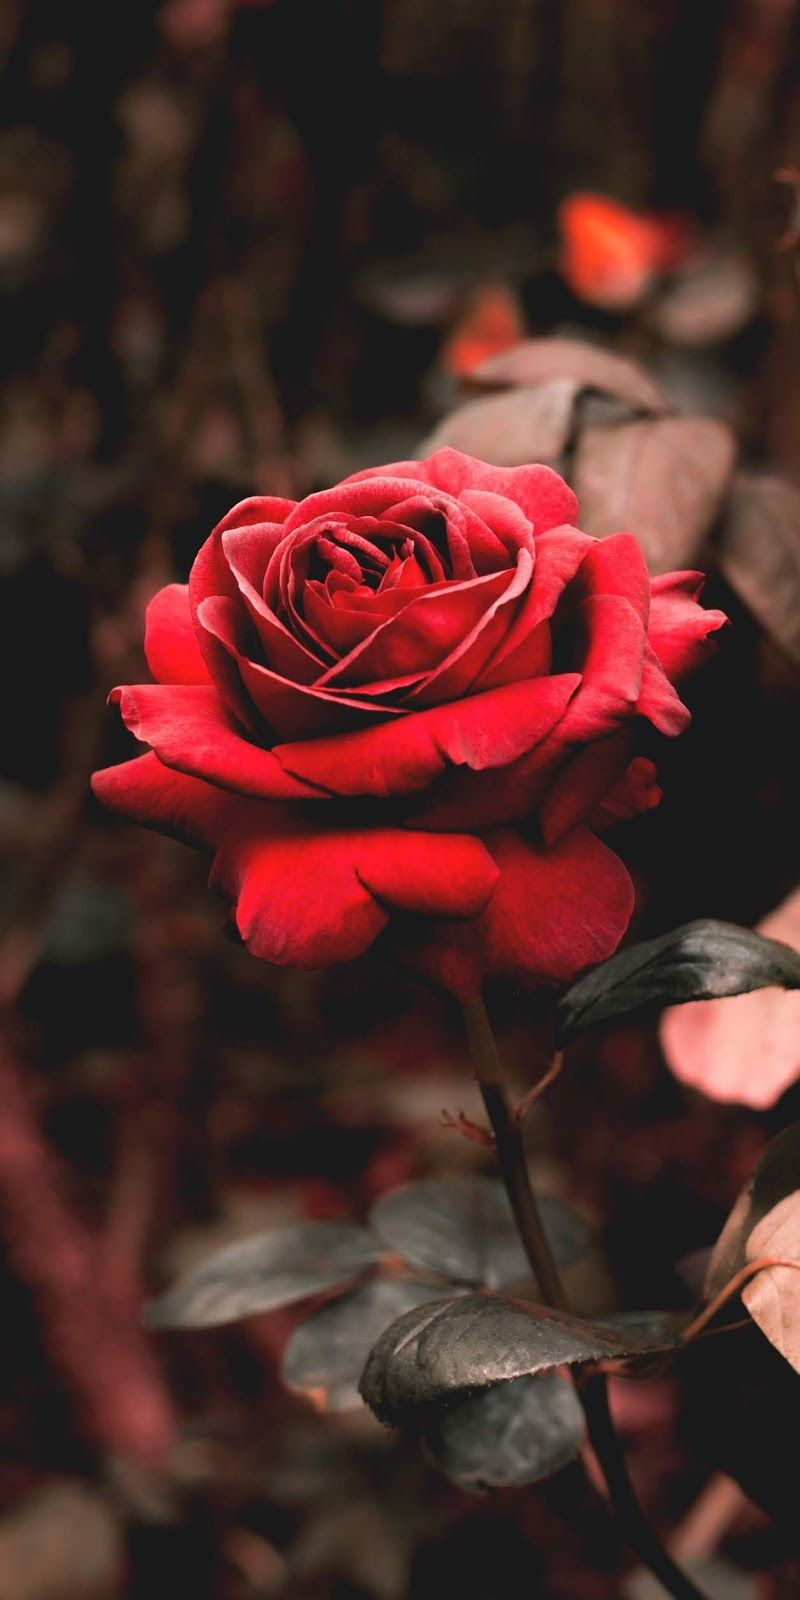 Red Rose Wallpaper Iphone Android Background Followme Wallpaper Mawar Wallpaper Mawar Merah Wallpaper Bunga Indah